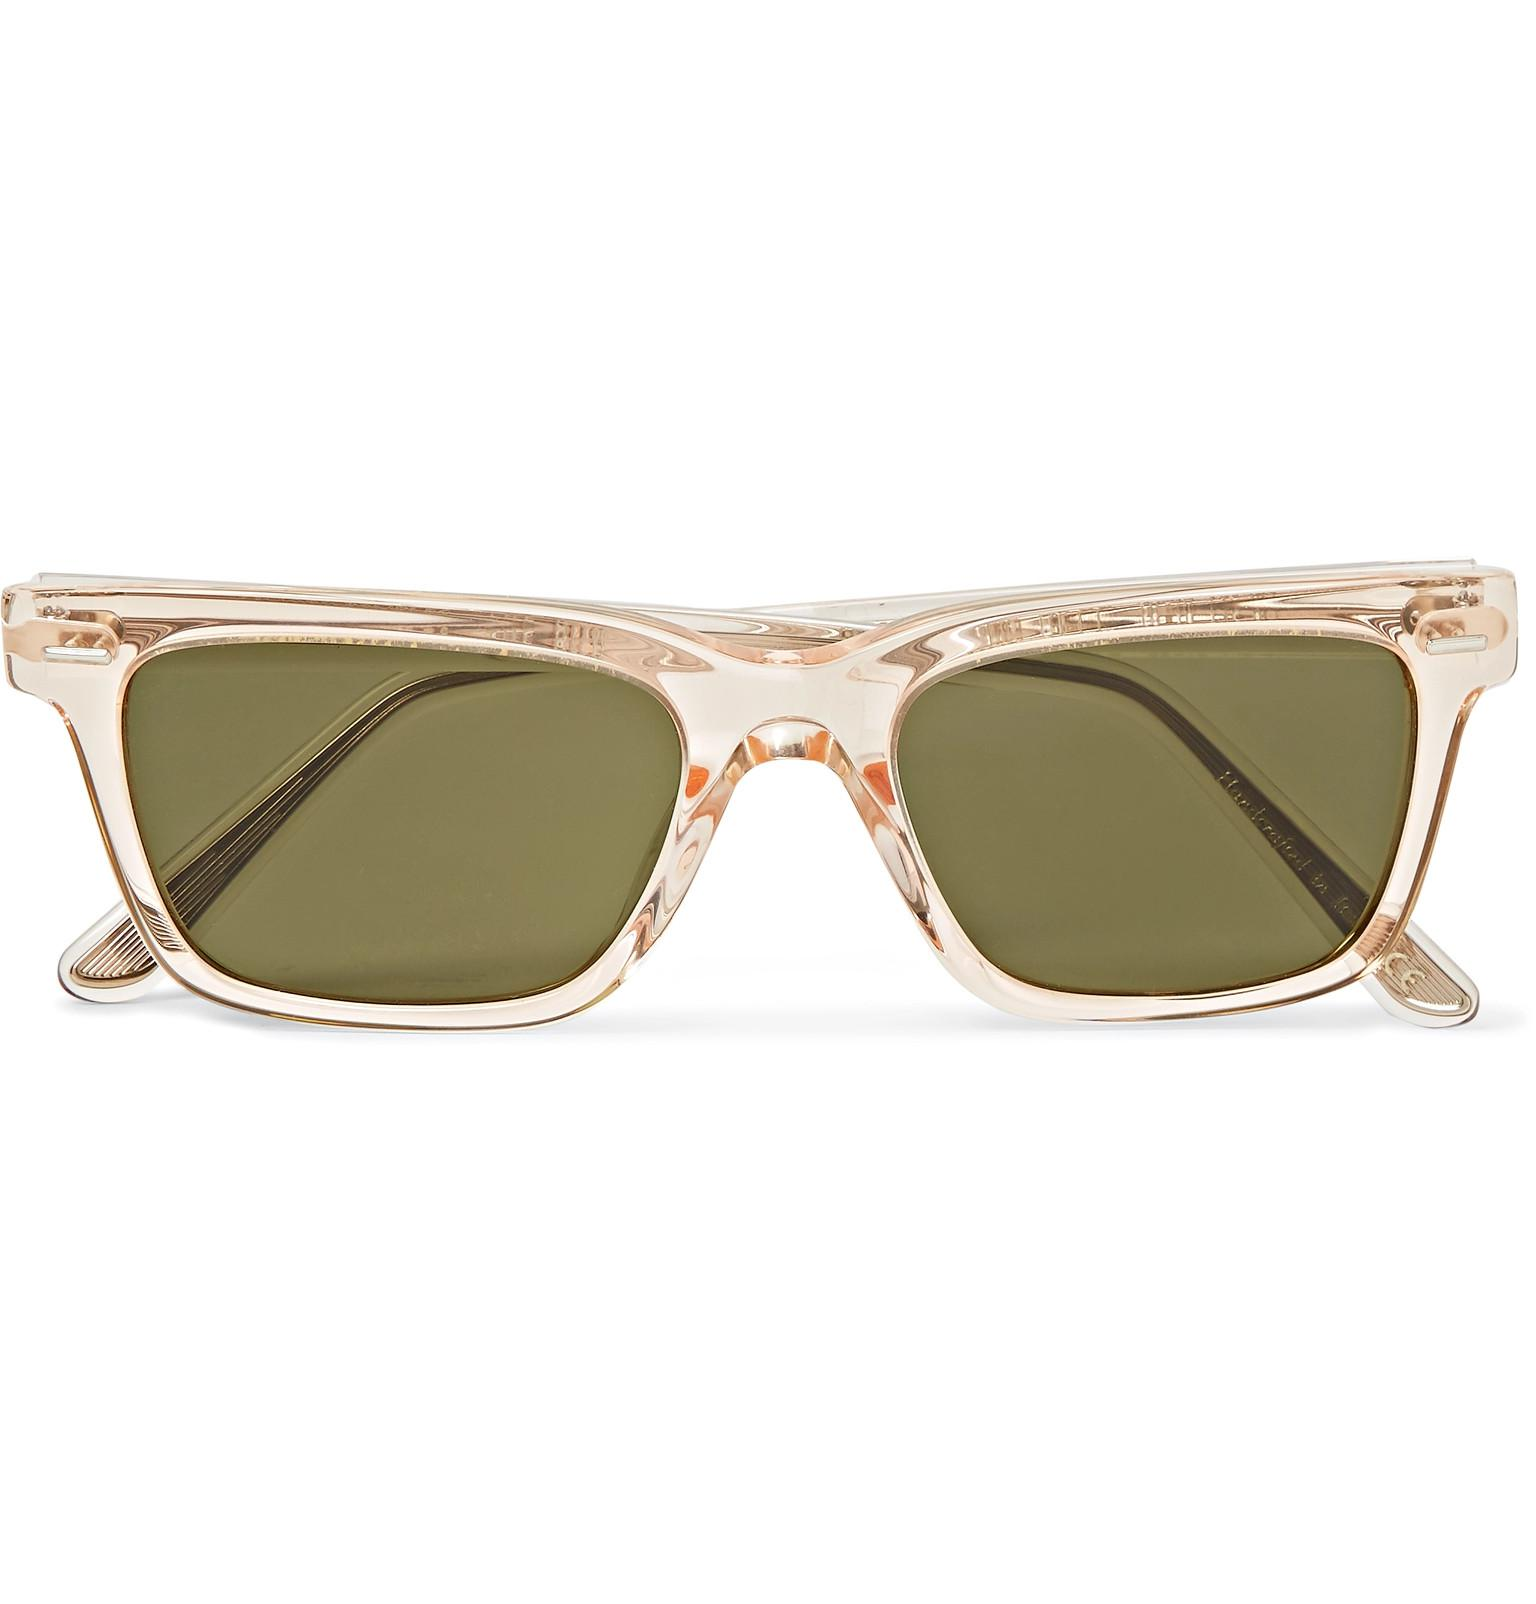 afe6ad63266b The Row. Men s + Oliver Peoples Ba Cc Square-frame Acetate Sunglasses